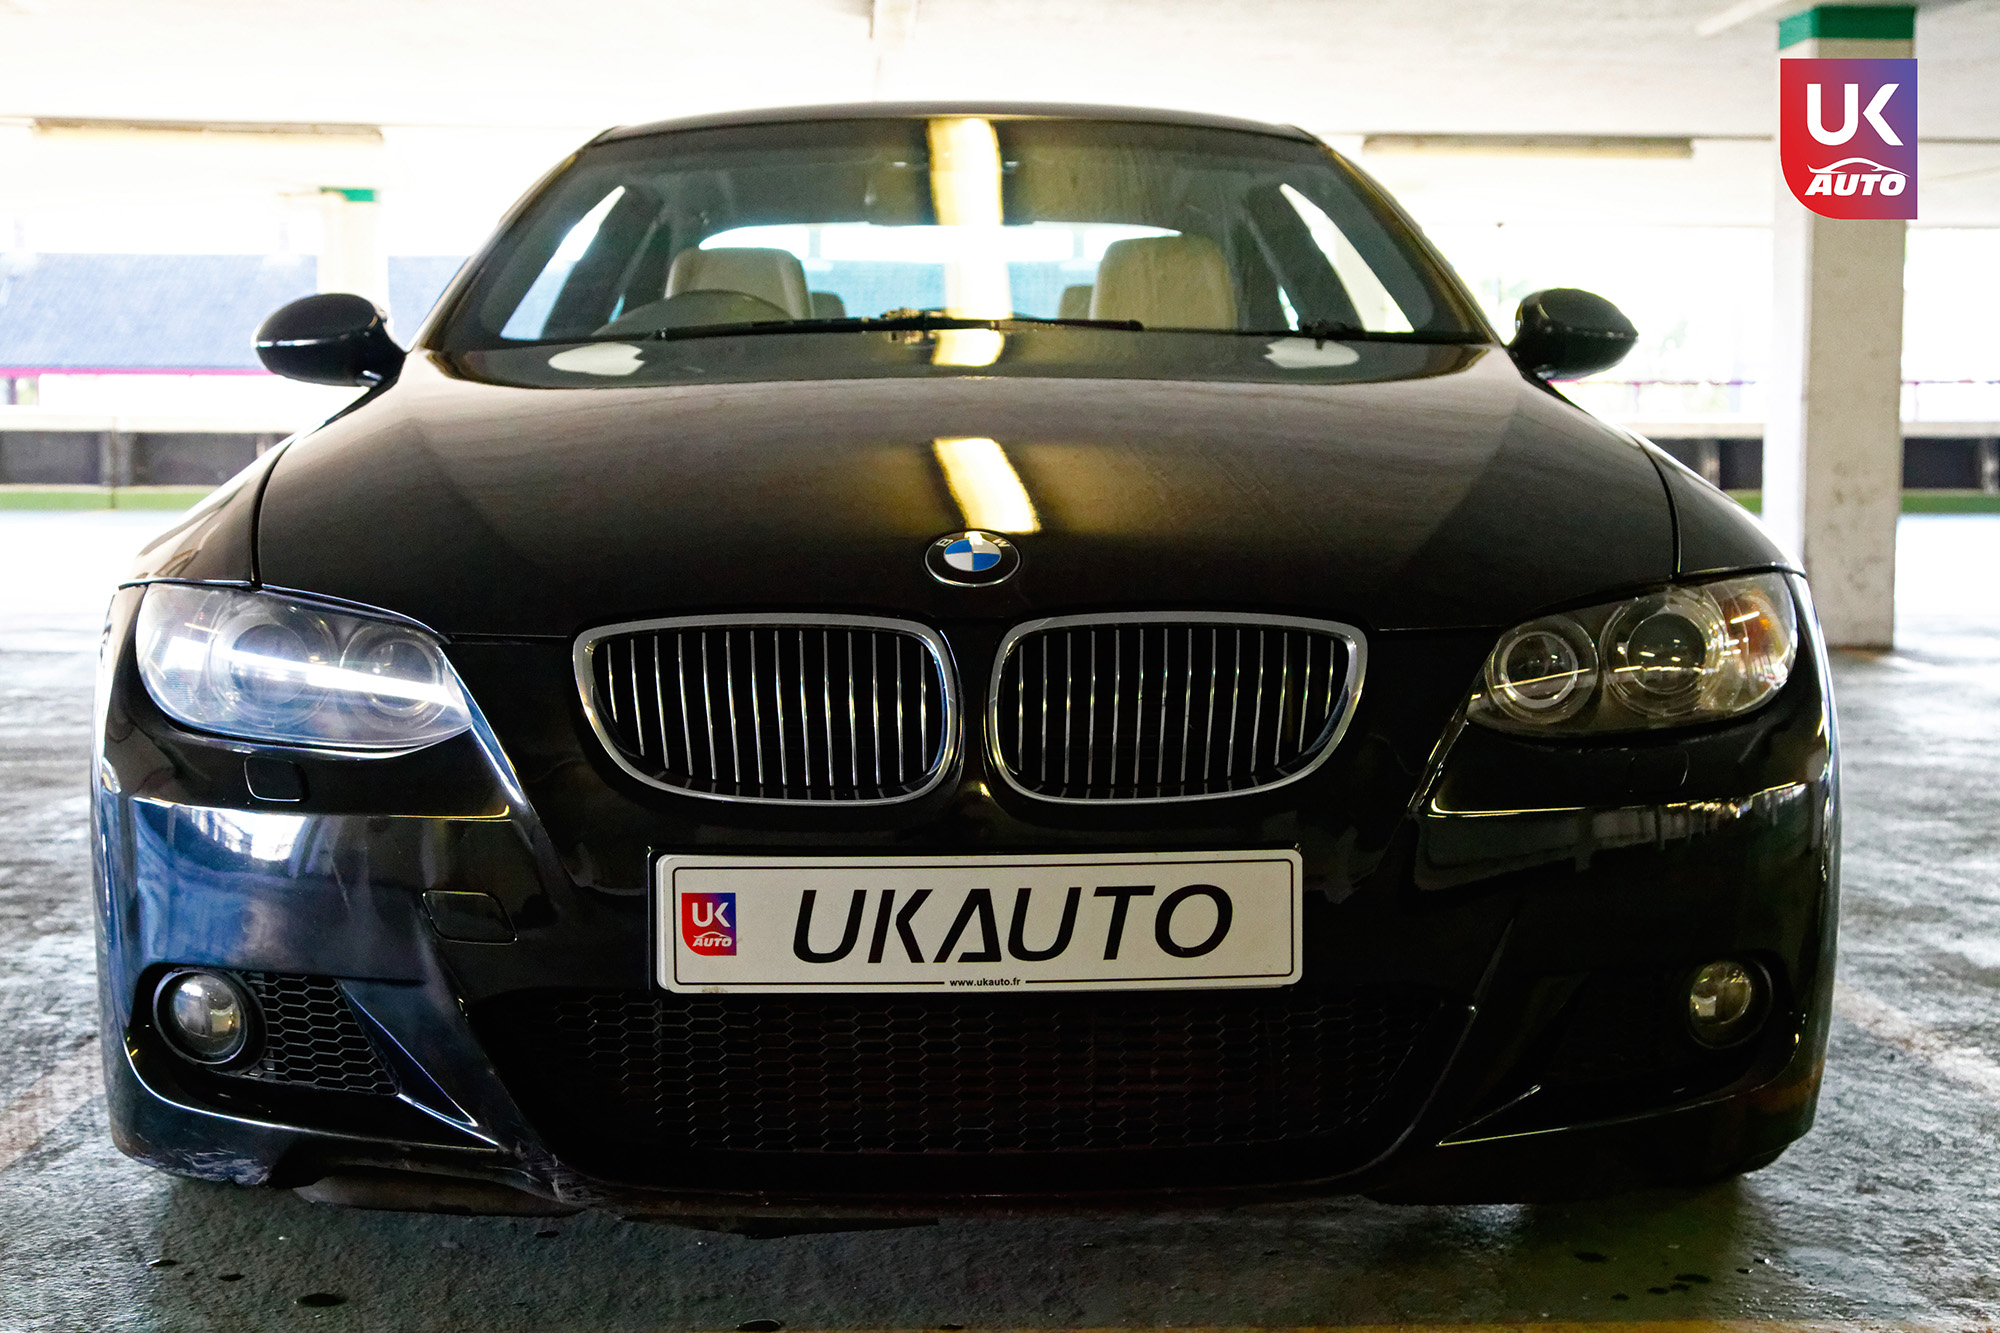 ukauto import bmw 335i bmw import angleterre voiture occasion voiture occasion auto import auto uk auto client3 - Felecitation a Tanguy pour ce bolide BMW 335i PACK M RHD IMPORT AUTO UK